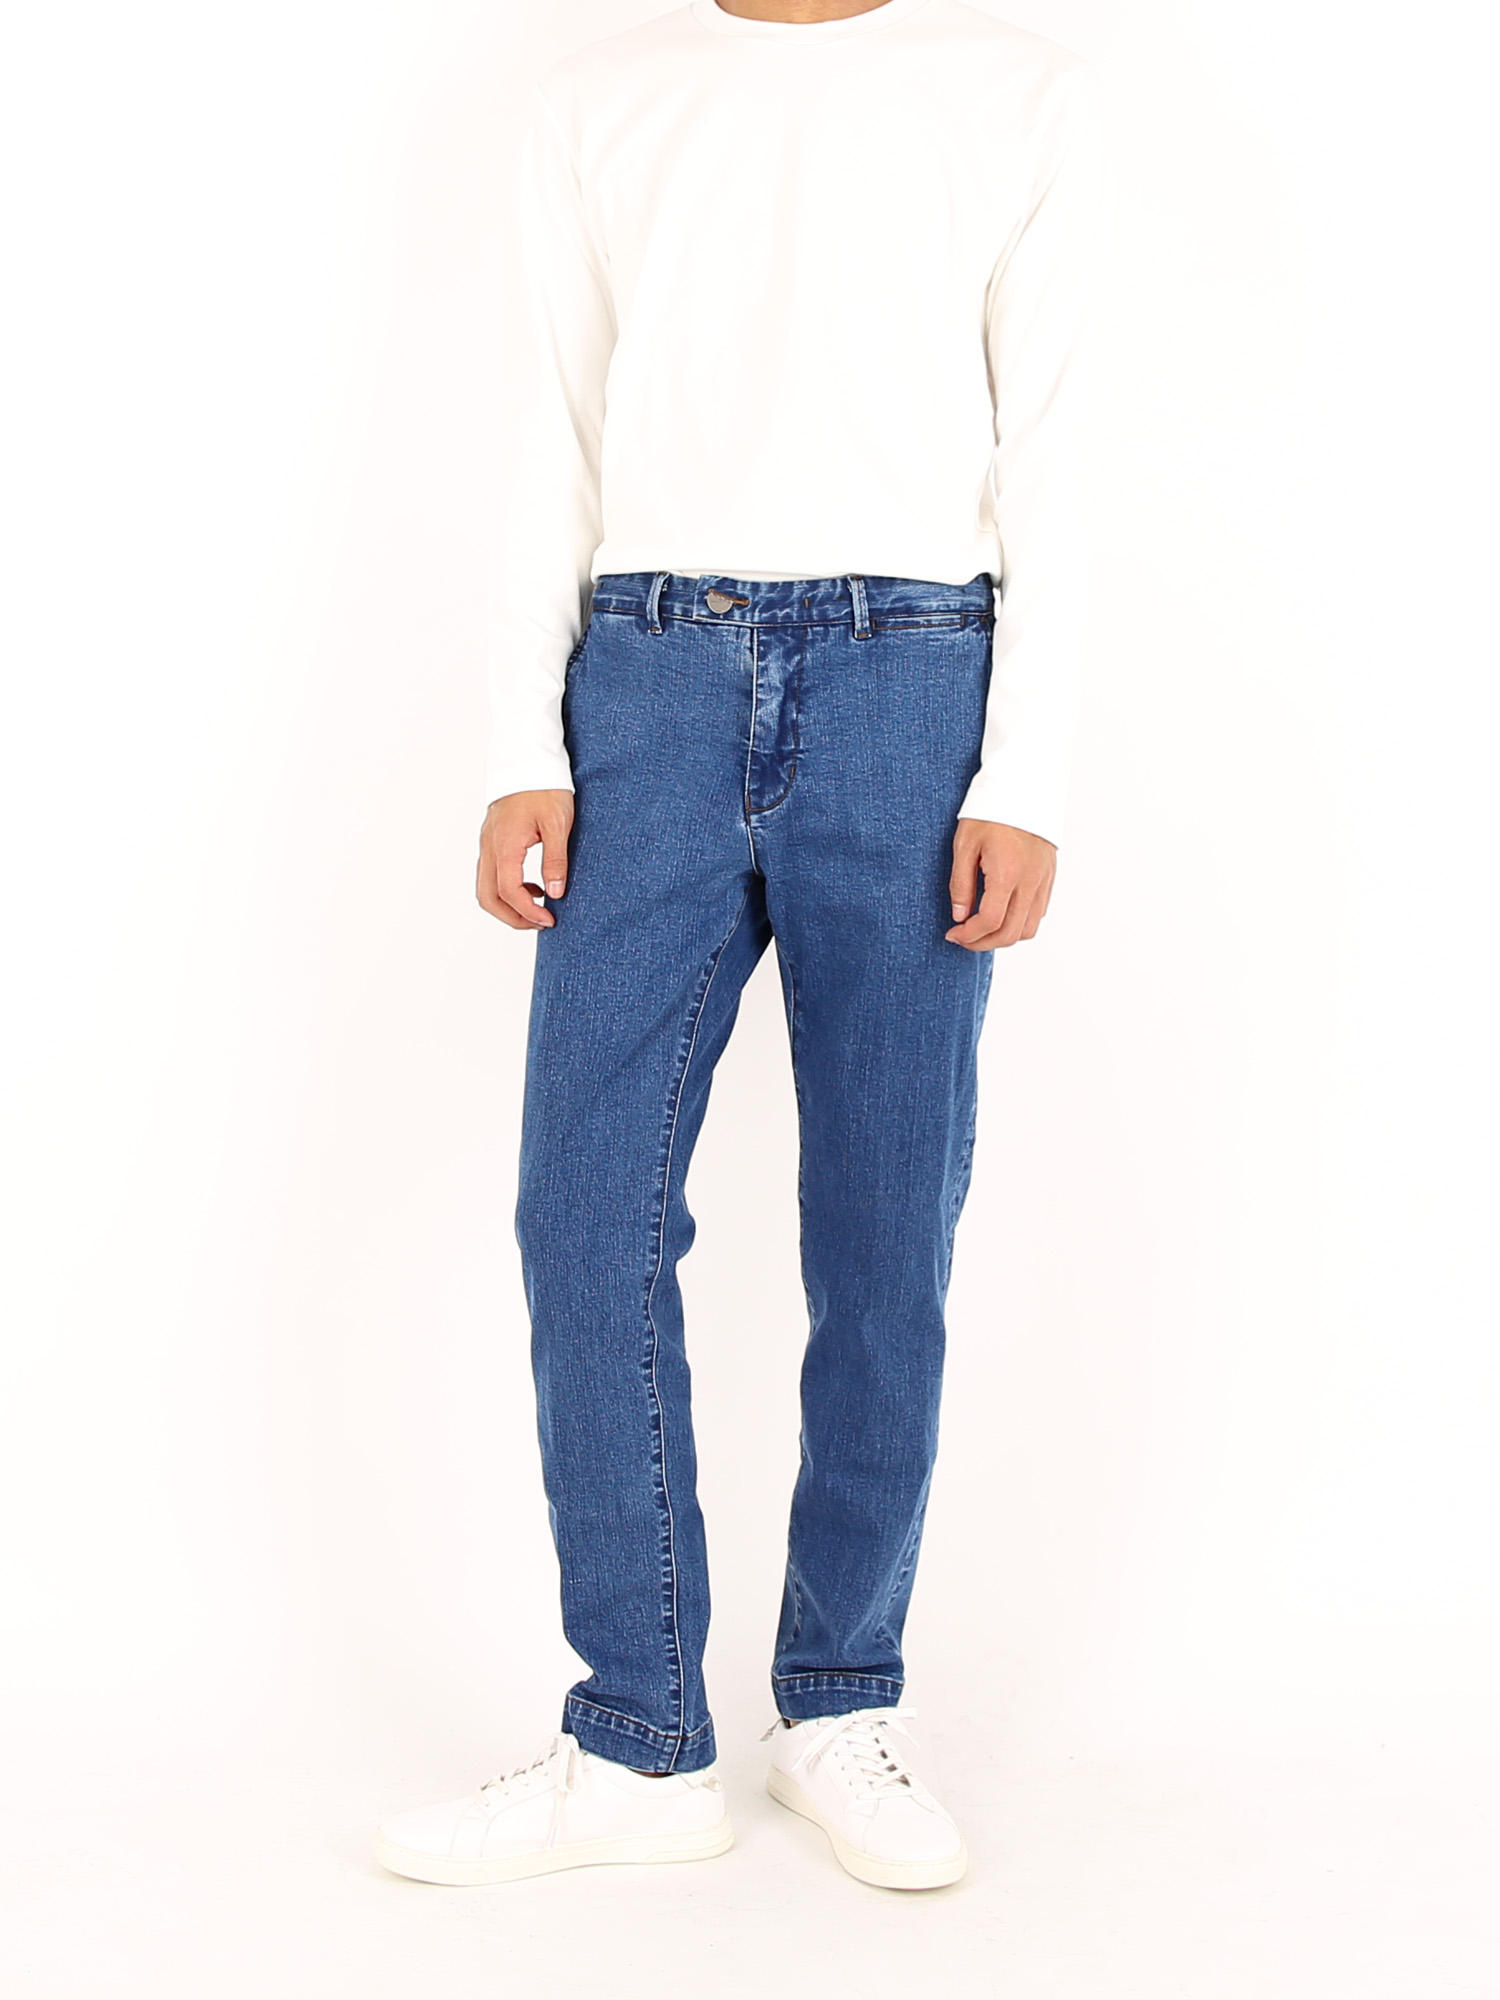 Courteous Jean,Blue - 커티어스 진,블루 (Slim Straight Fit) [JMJ-10(S)]